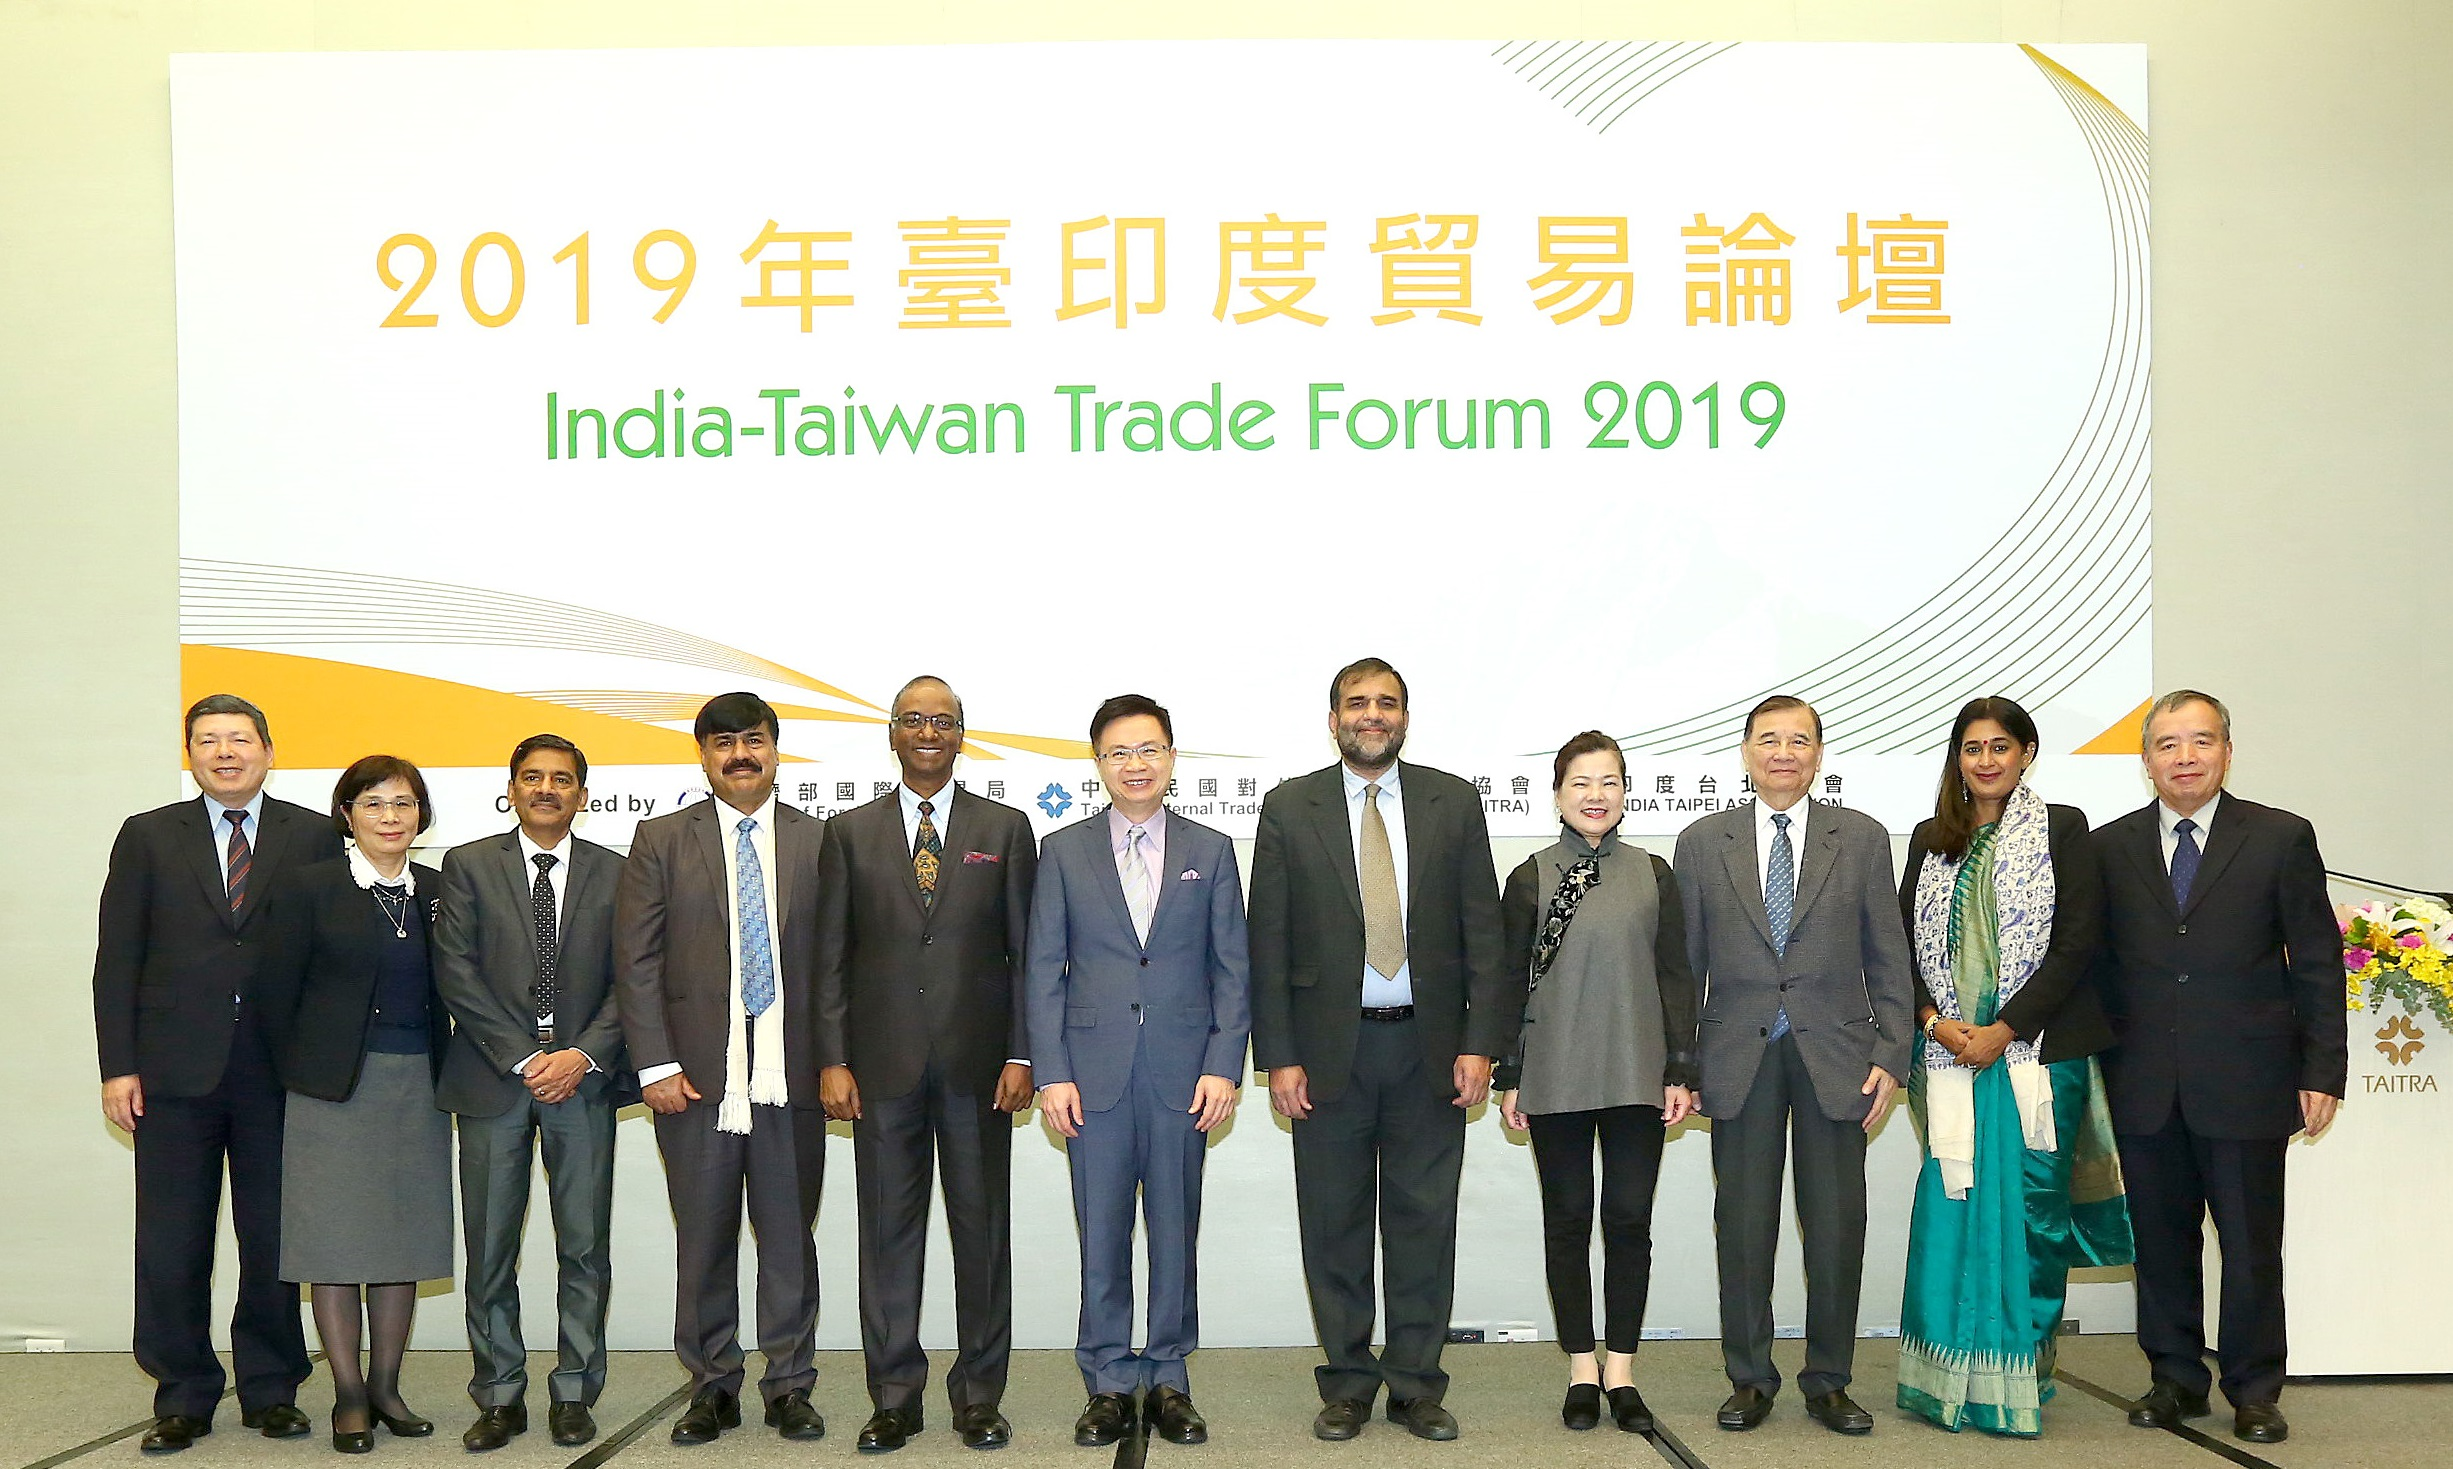 New Southbound Policy。TAITRA Chairman James C. F. Huang (center) is joined by Vice Minister of Economic Affairs Wang Mei-hua (fourth right), Indian Commerce Secretary Anup Wadhawan (fifth right), ITA Director Sridharan Madhusudhanan (fifth left) and other guests in opening the India-Taiwan Trade Forum Jan. 15 in Taipei City. (Courtesy of TAITRA)